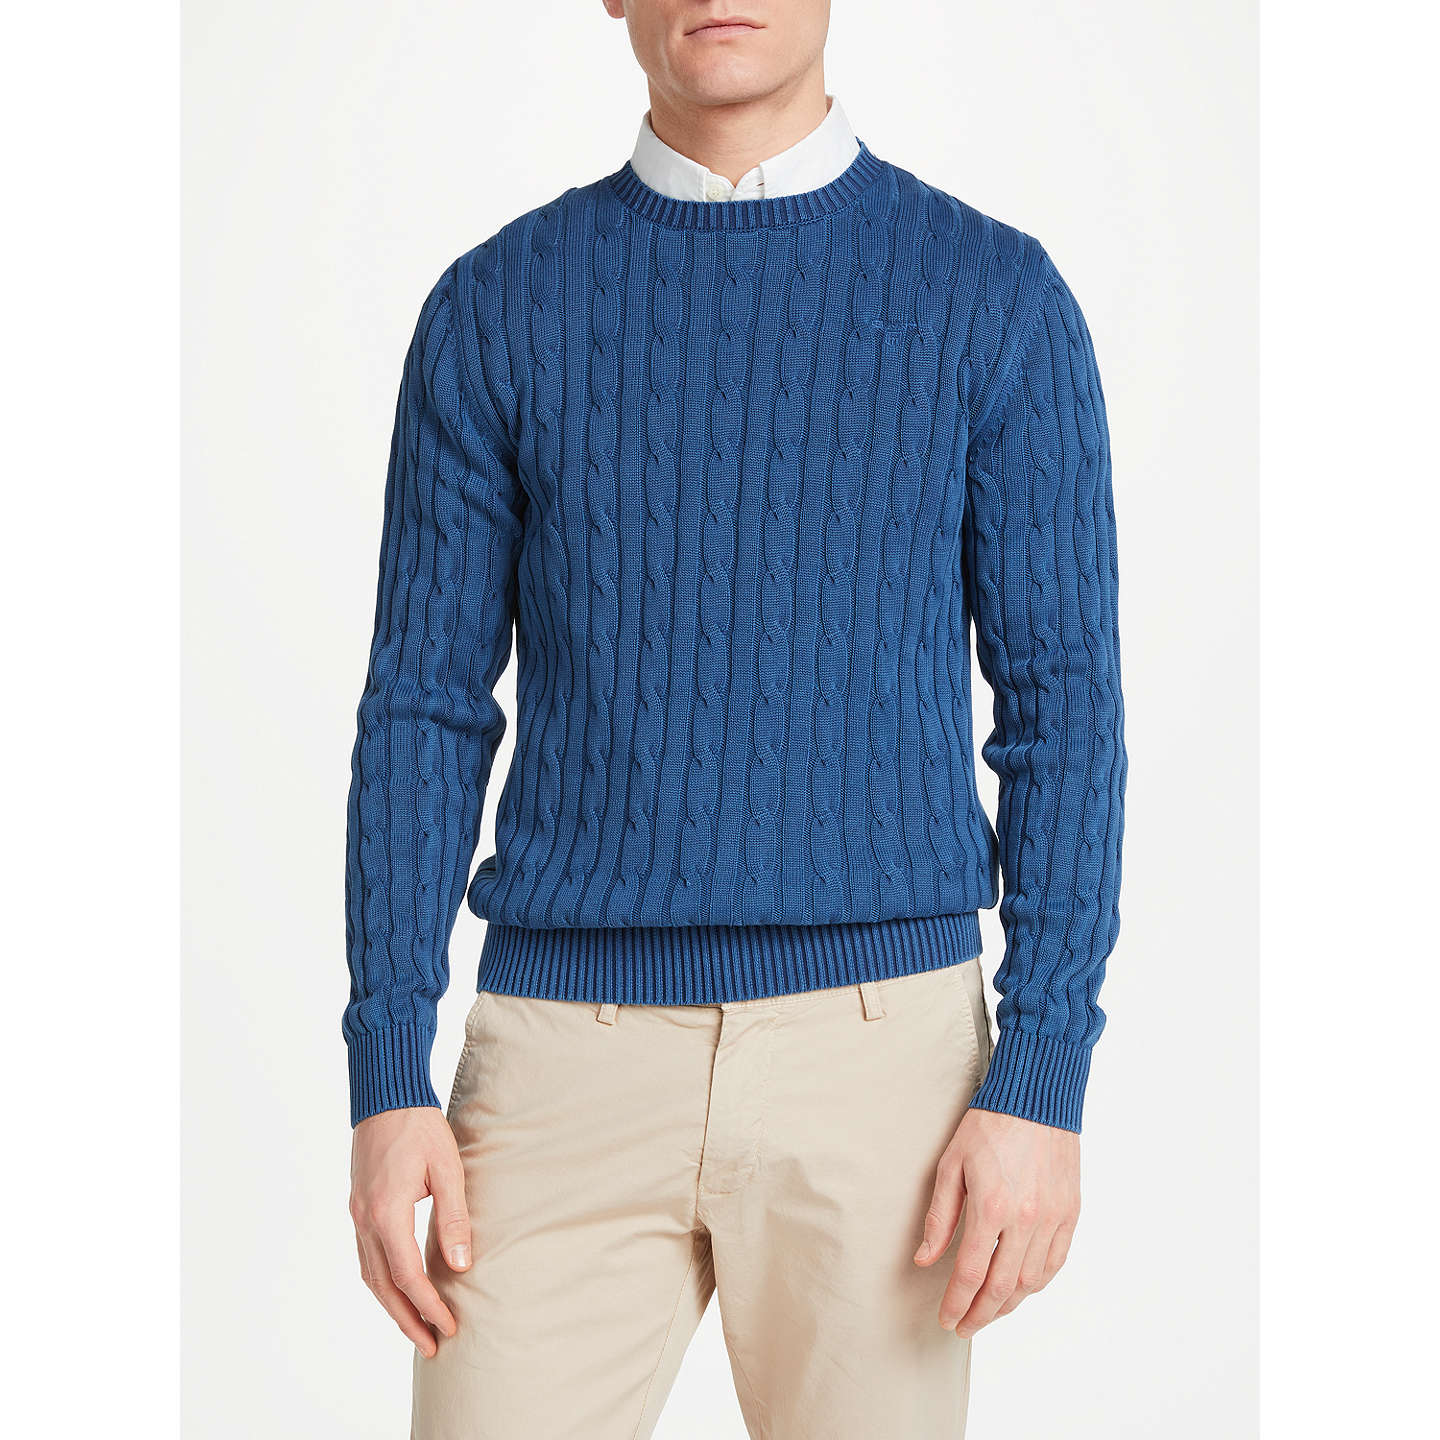 BuyGANT Sunbleached Cable Knit Jumper, Persian Blue, S Online at  johnlewis.com